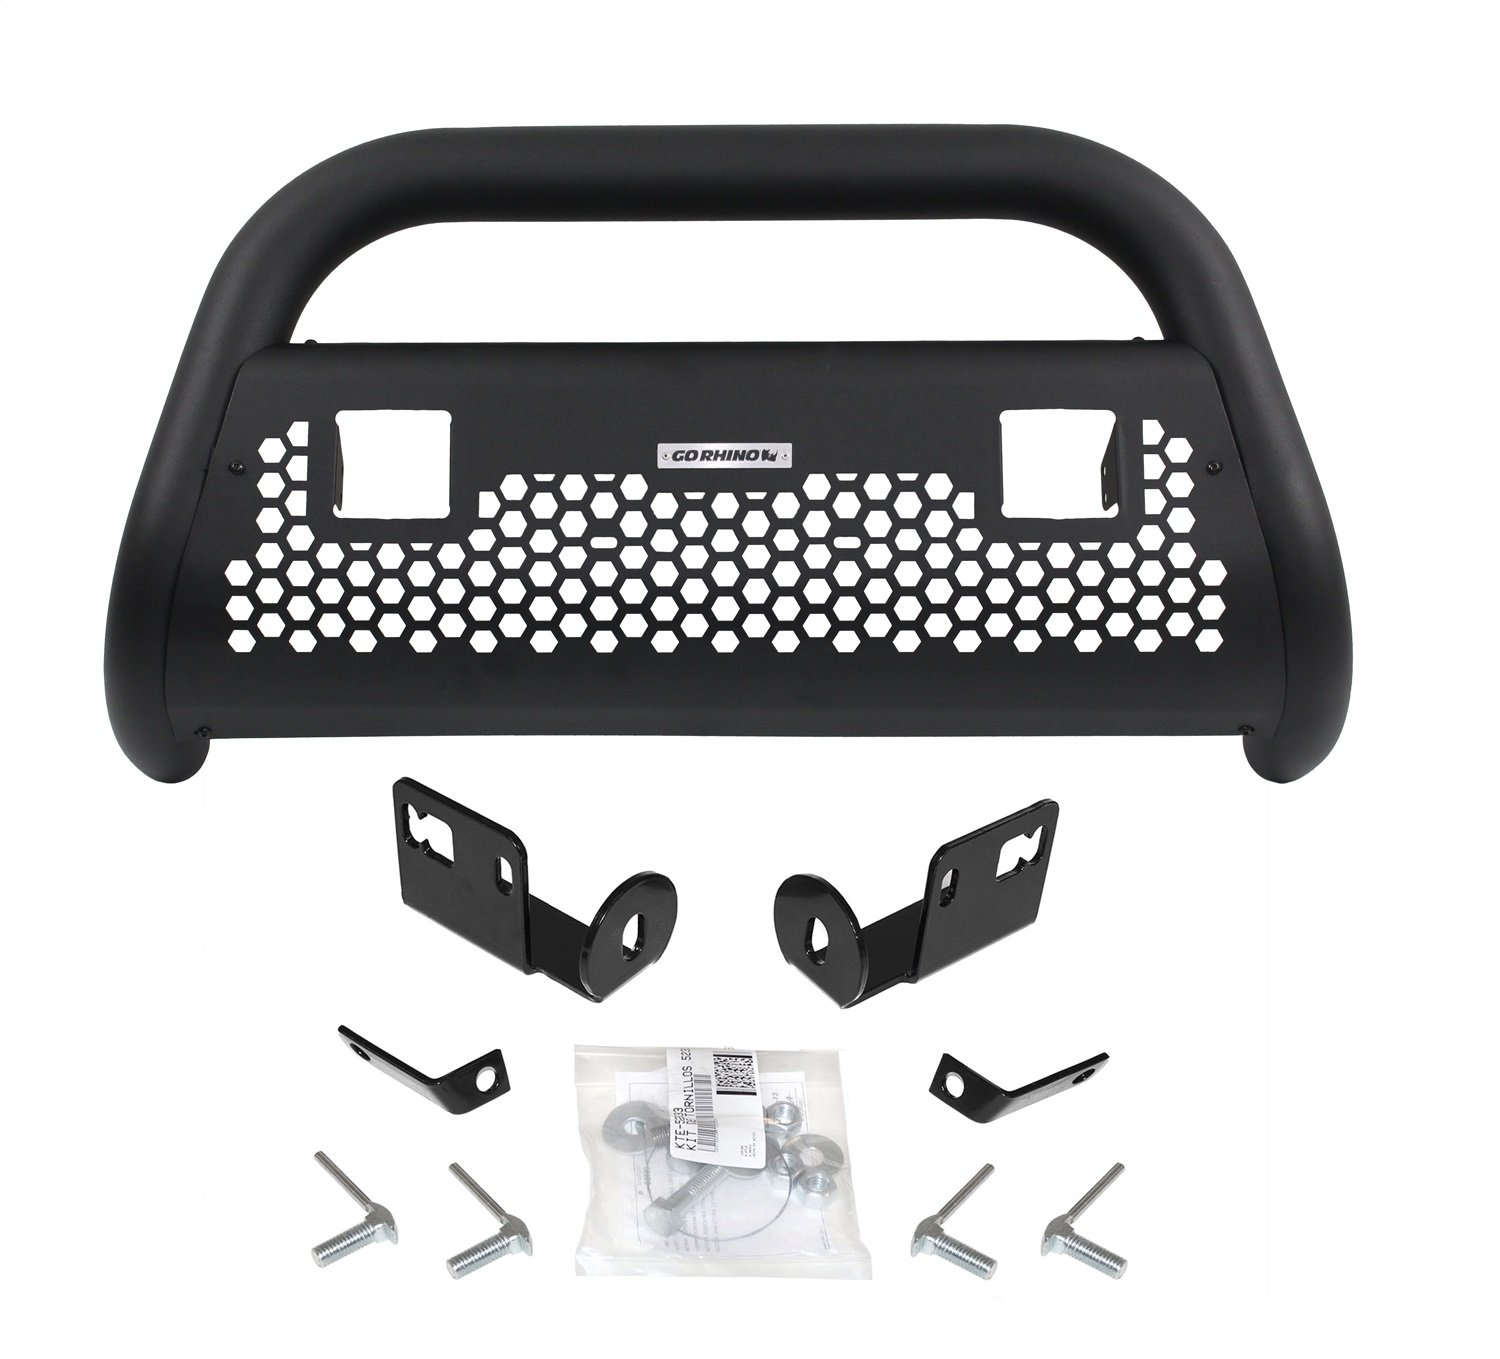 Go Rhino 55532T RC2 LR Textured Black Front Guard for Toyota (Complete Kit: Front Guard+Brackets, RHINO! Charger 2)